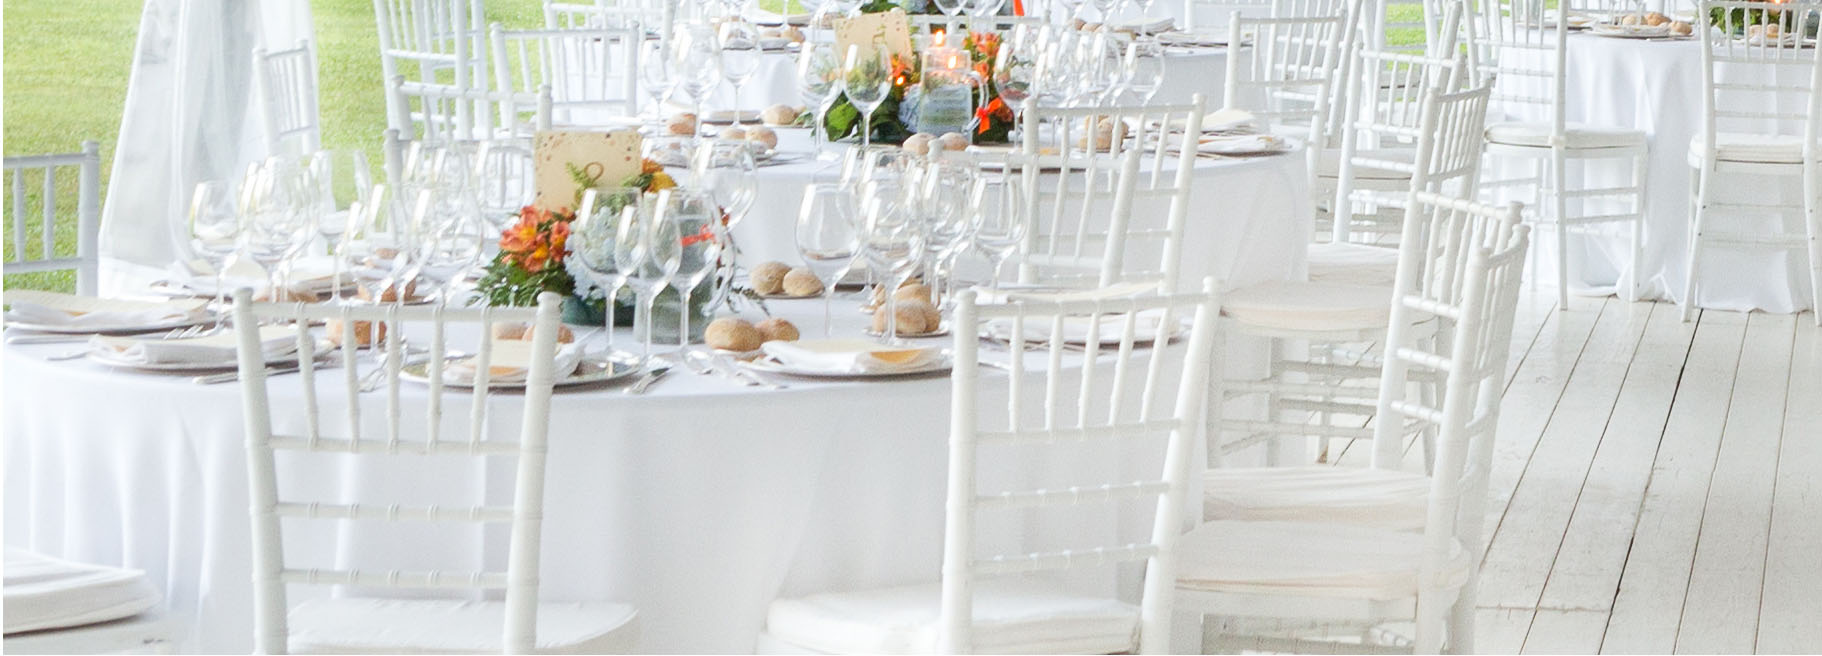 Party Chair Rentals Party And Event Rentals San Diego Wedding Rentals Party